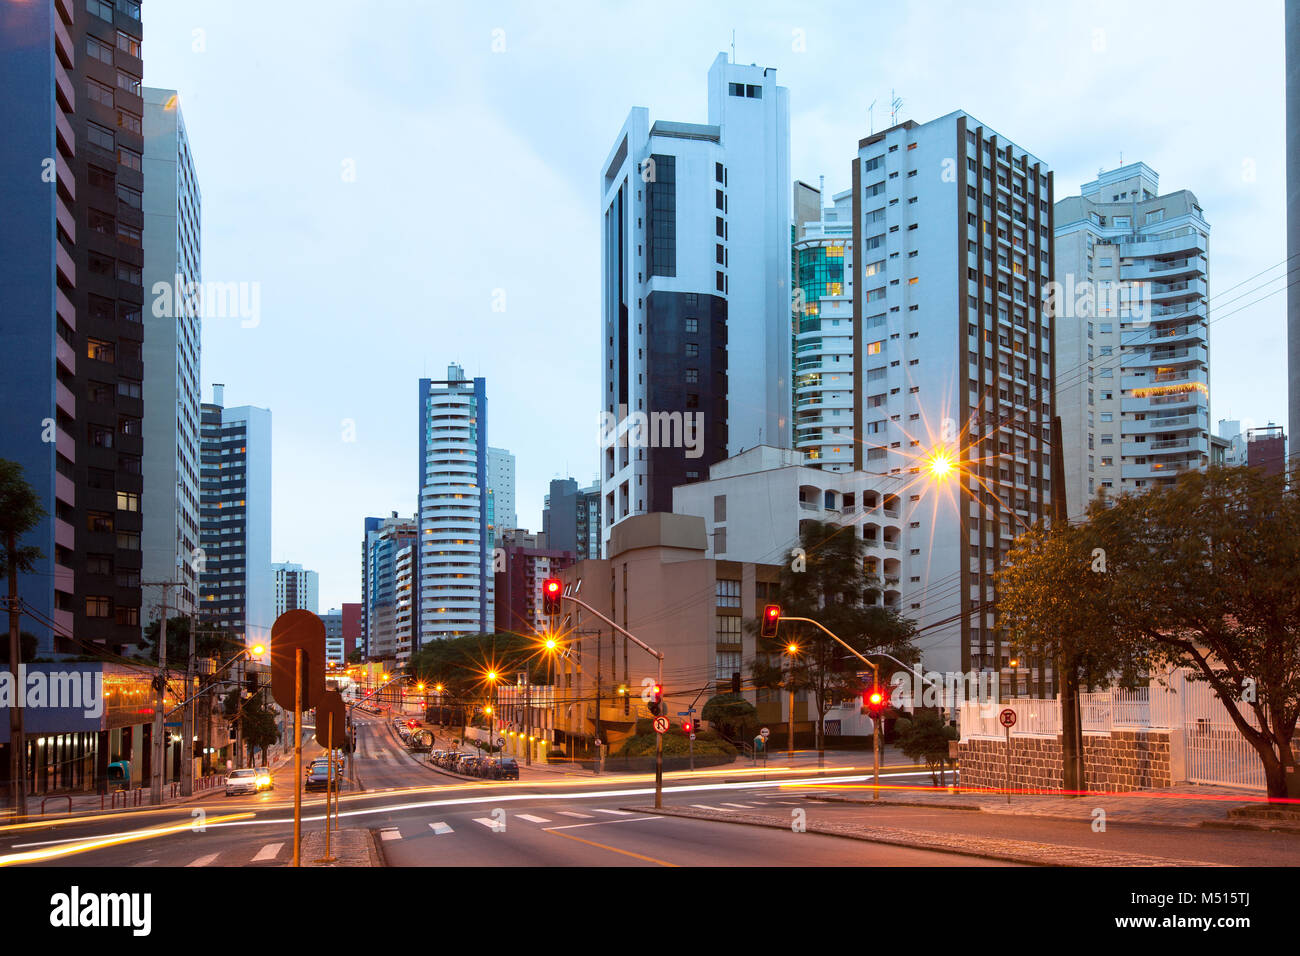 The wealthy neighborhood of Batel, Curitiba, Parana State, Brasil - Stock Image